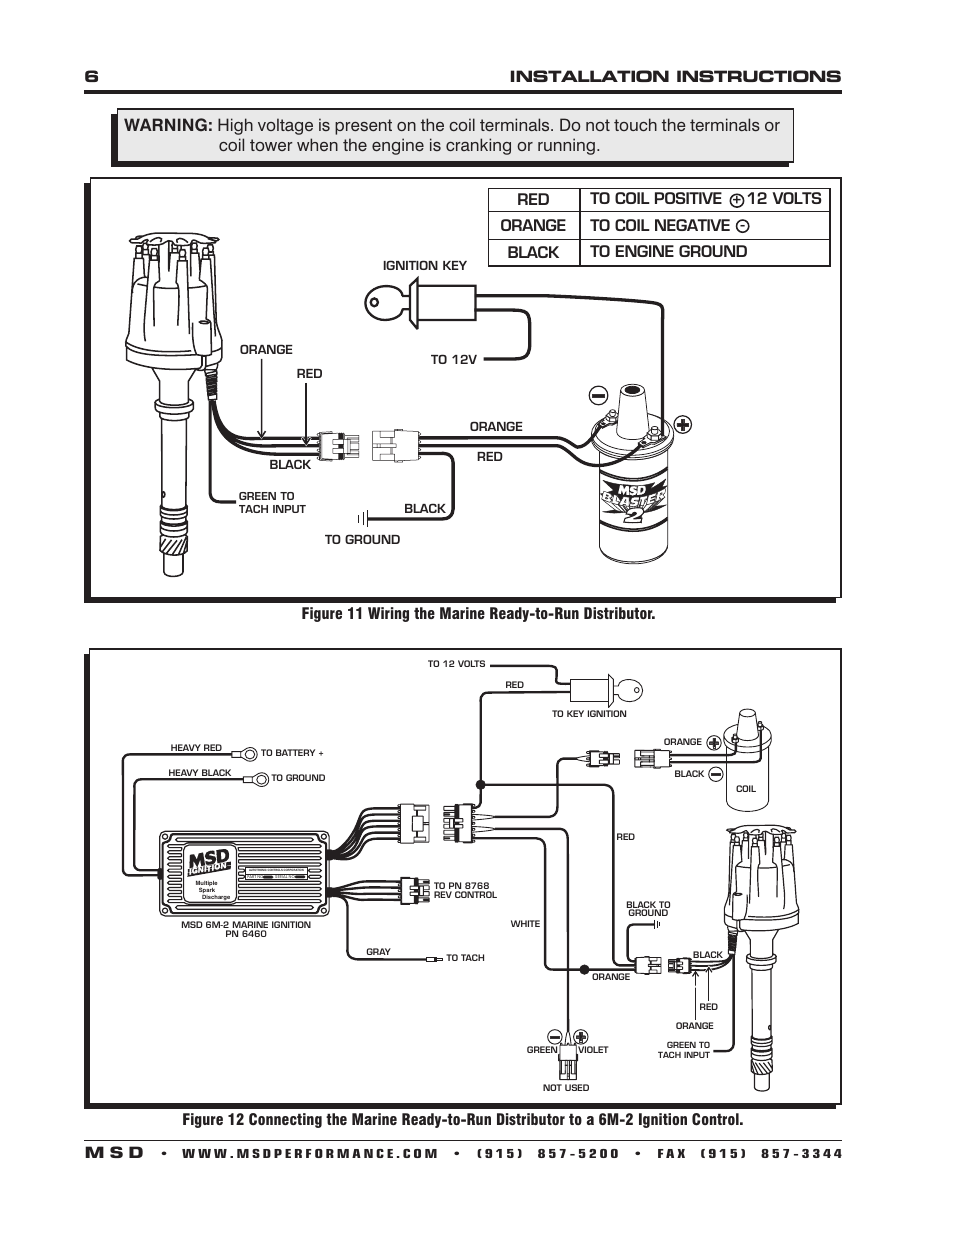 ford 460 msd ignition wiring diagram ford 460 msd 7al wiring diagram